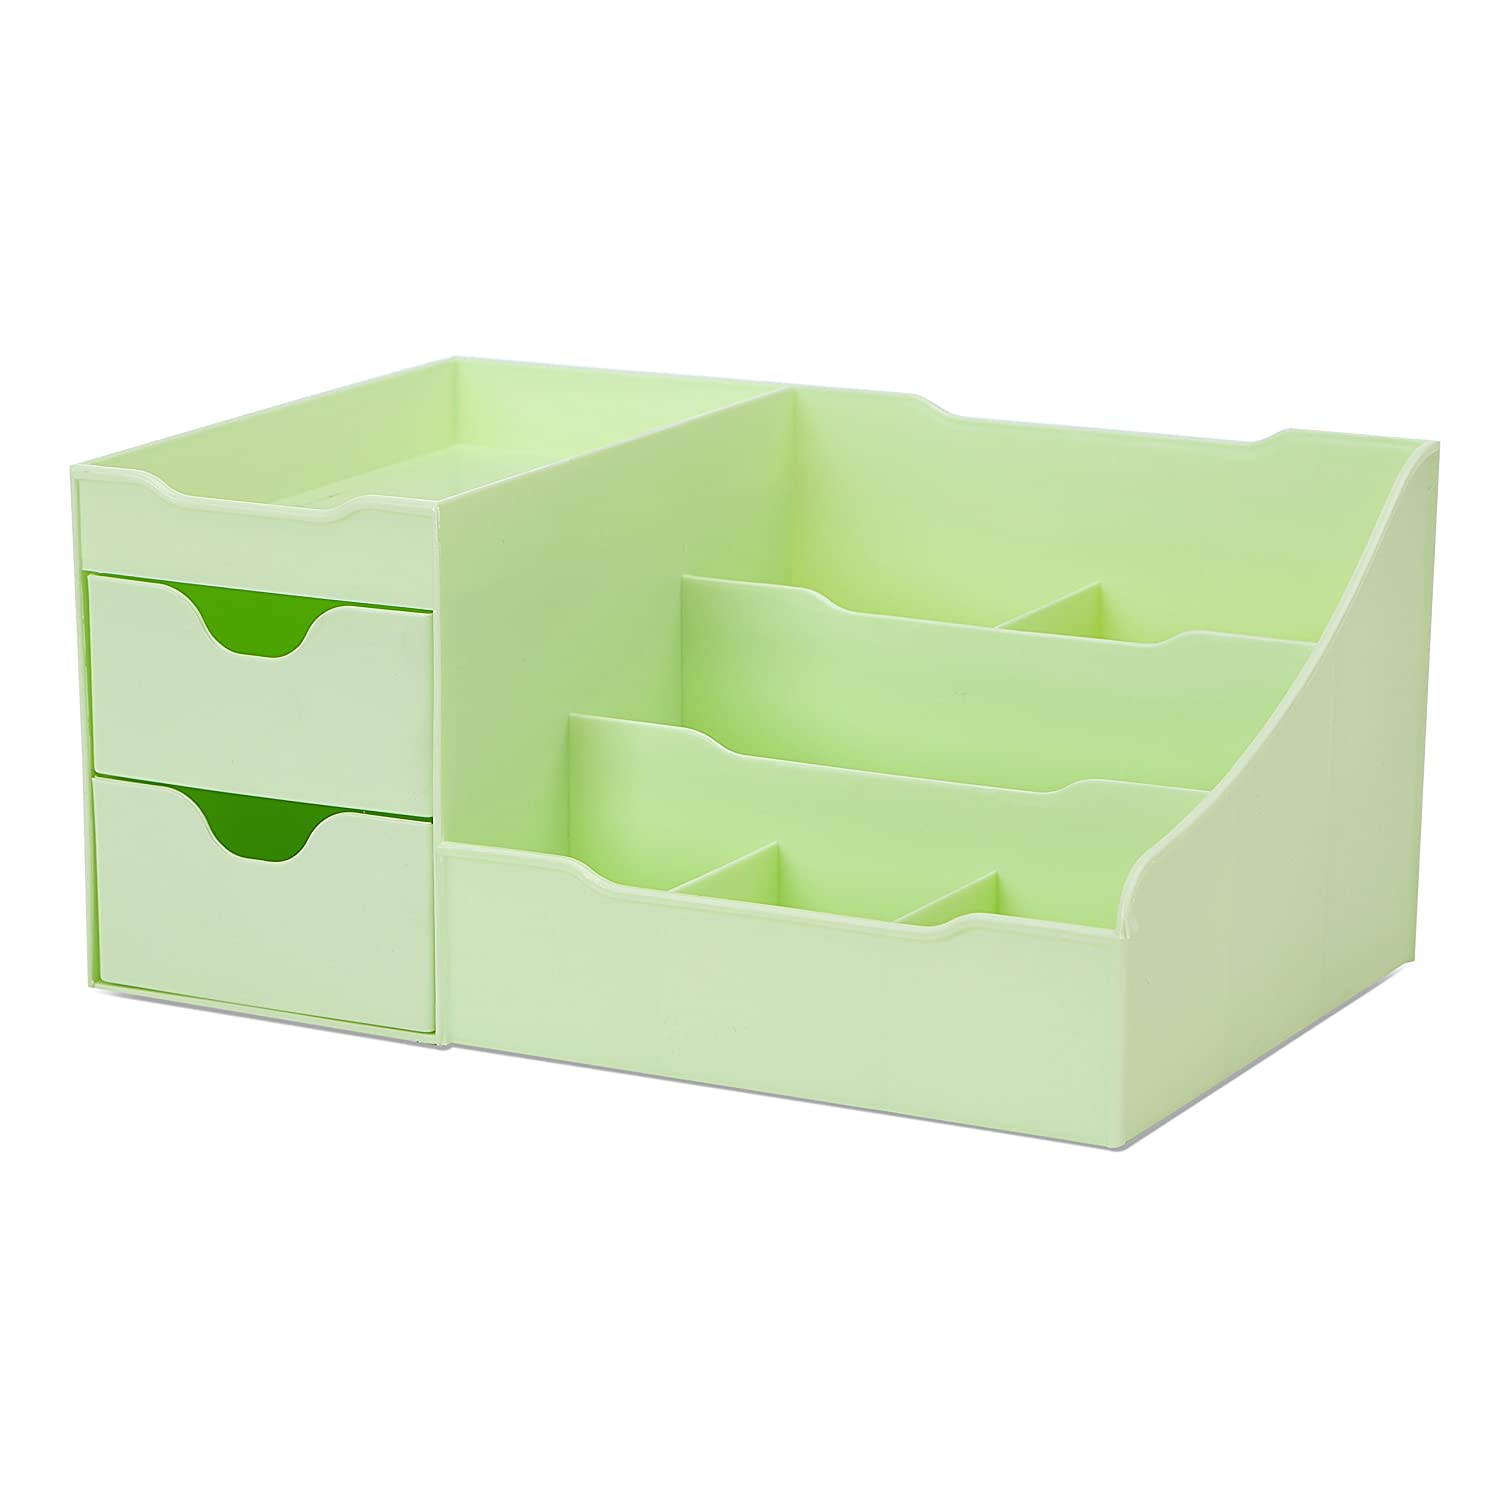 Uncluttered Designs Makeup Organizer with Drawers (Green)